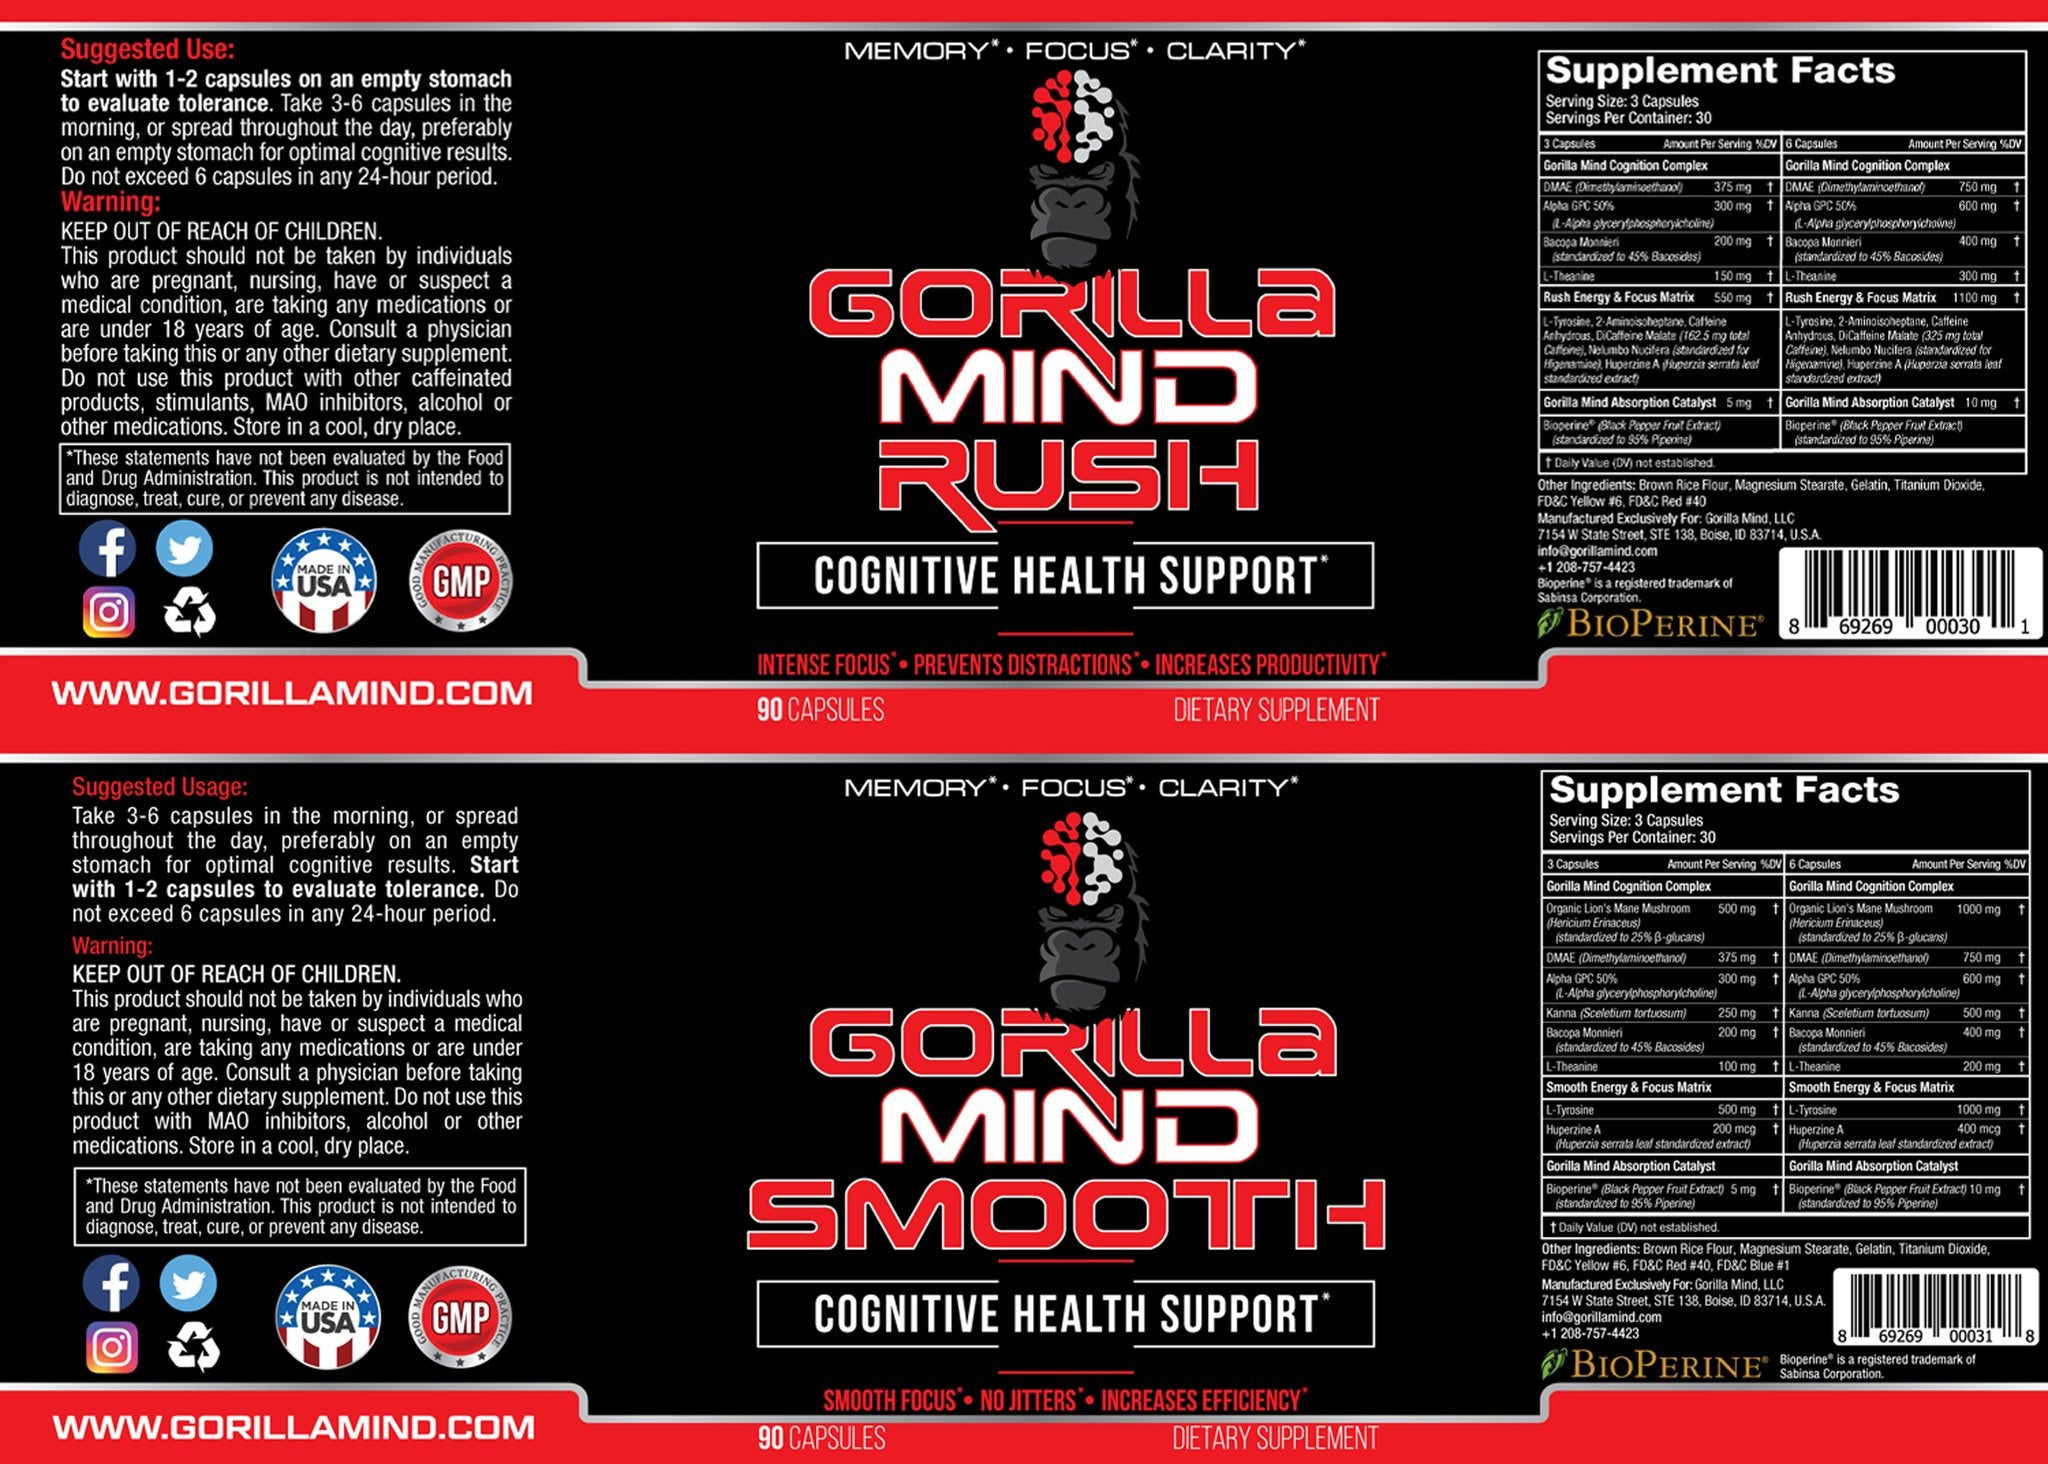 Gorilla Mind Rush + Smooth Bundle Supplement Facts